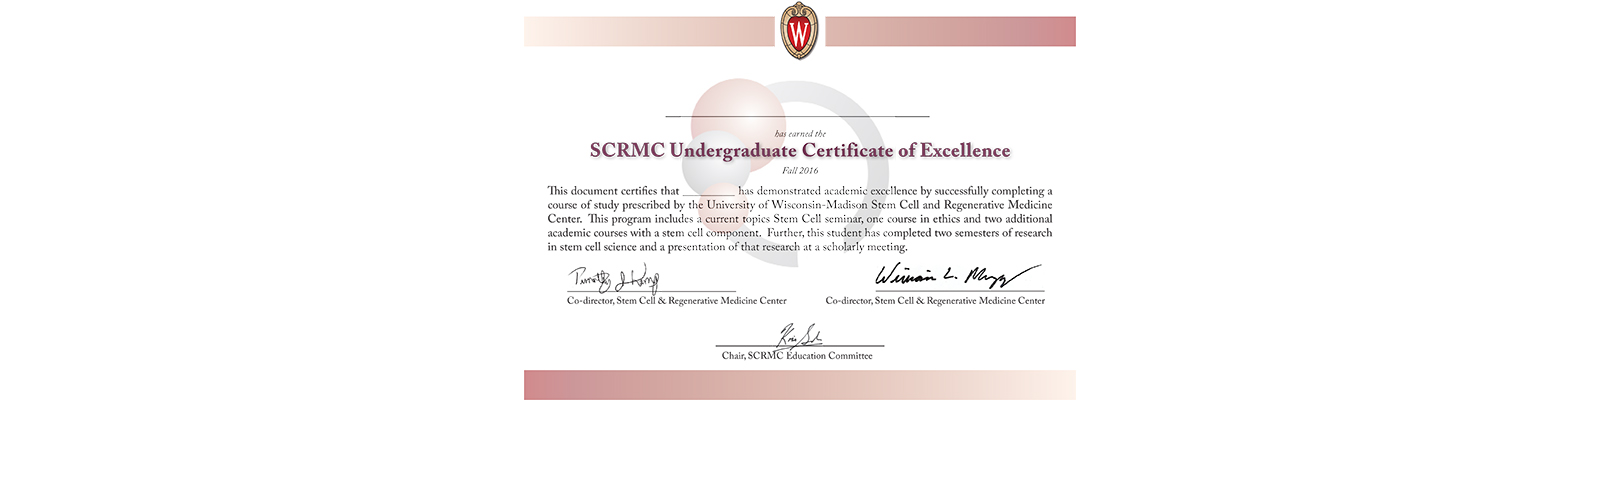 Undergraduate Certificate of Excellence in Stem Cell Sciences ...